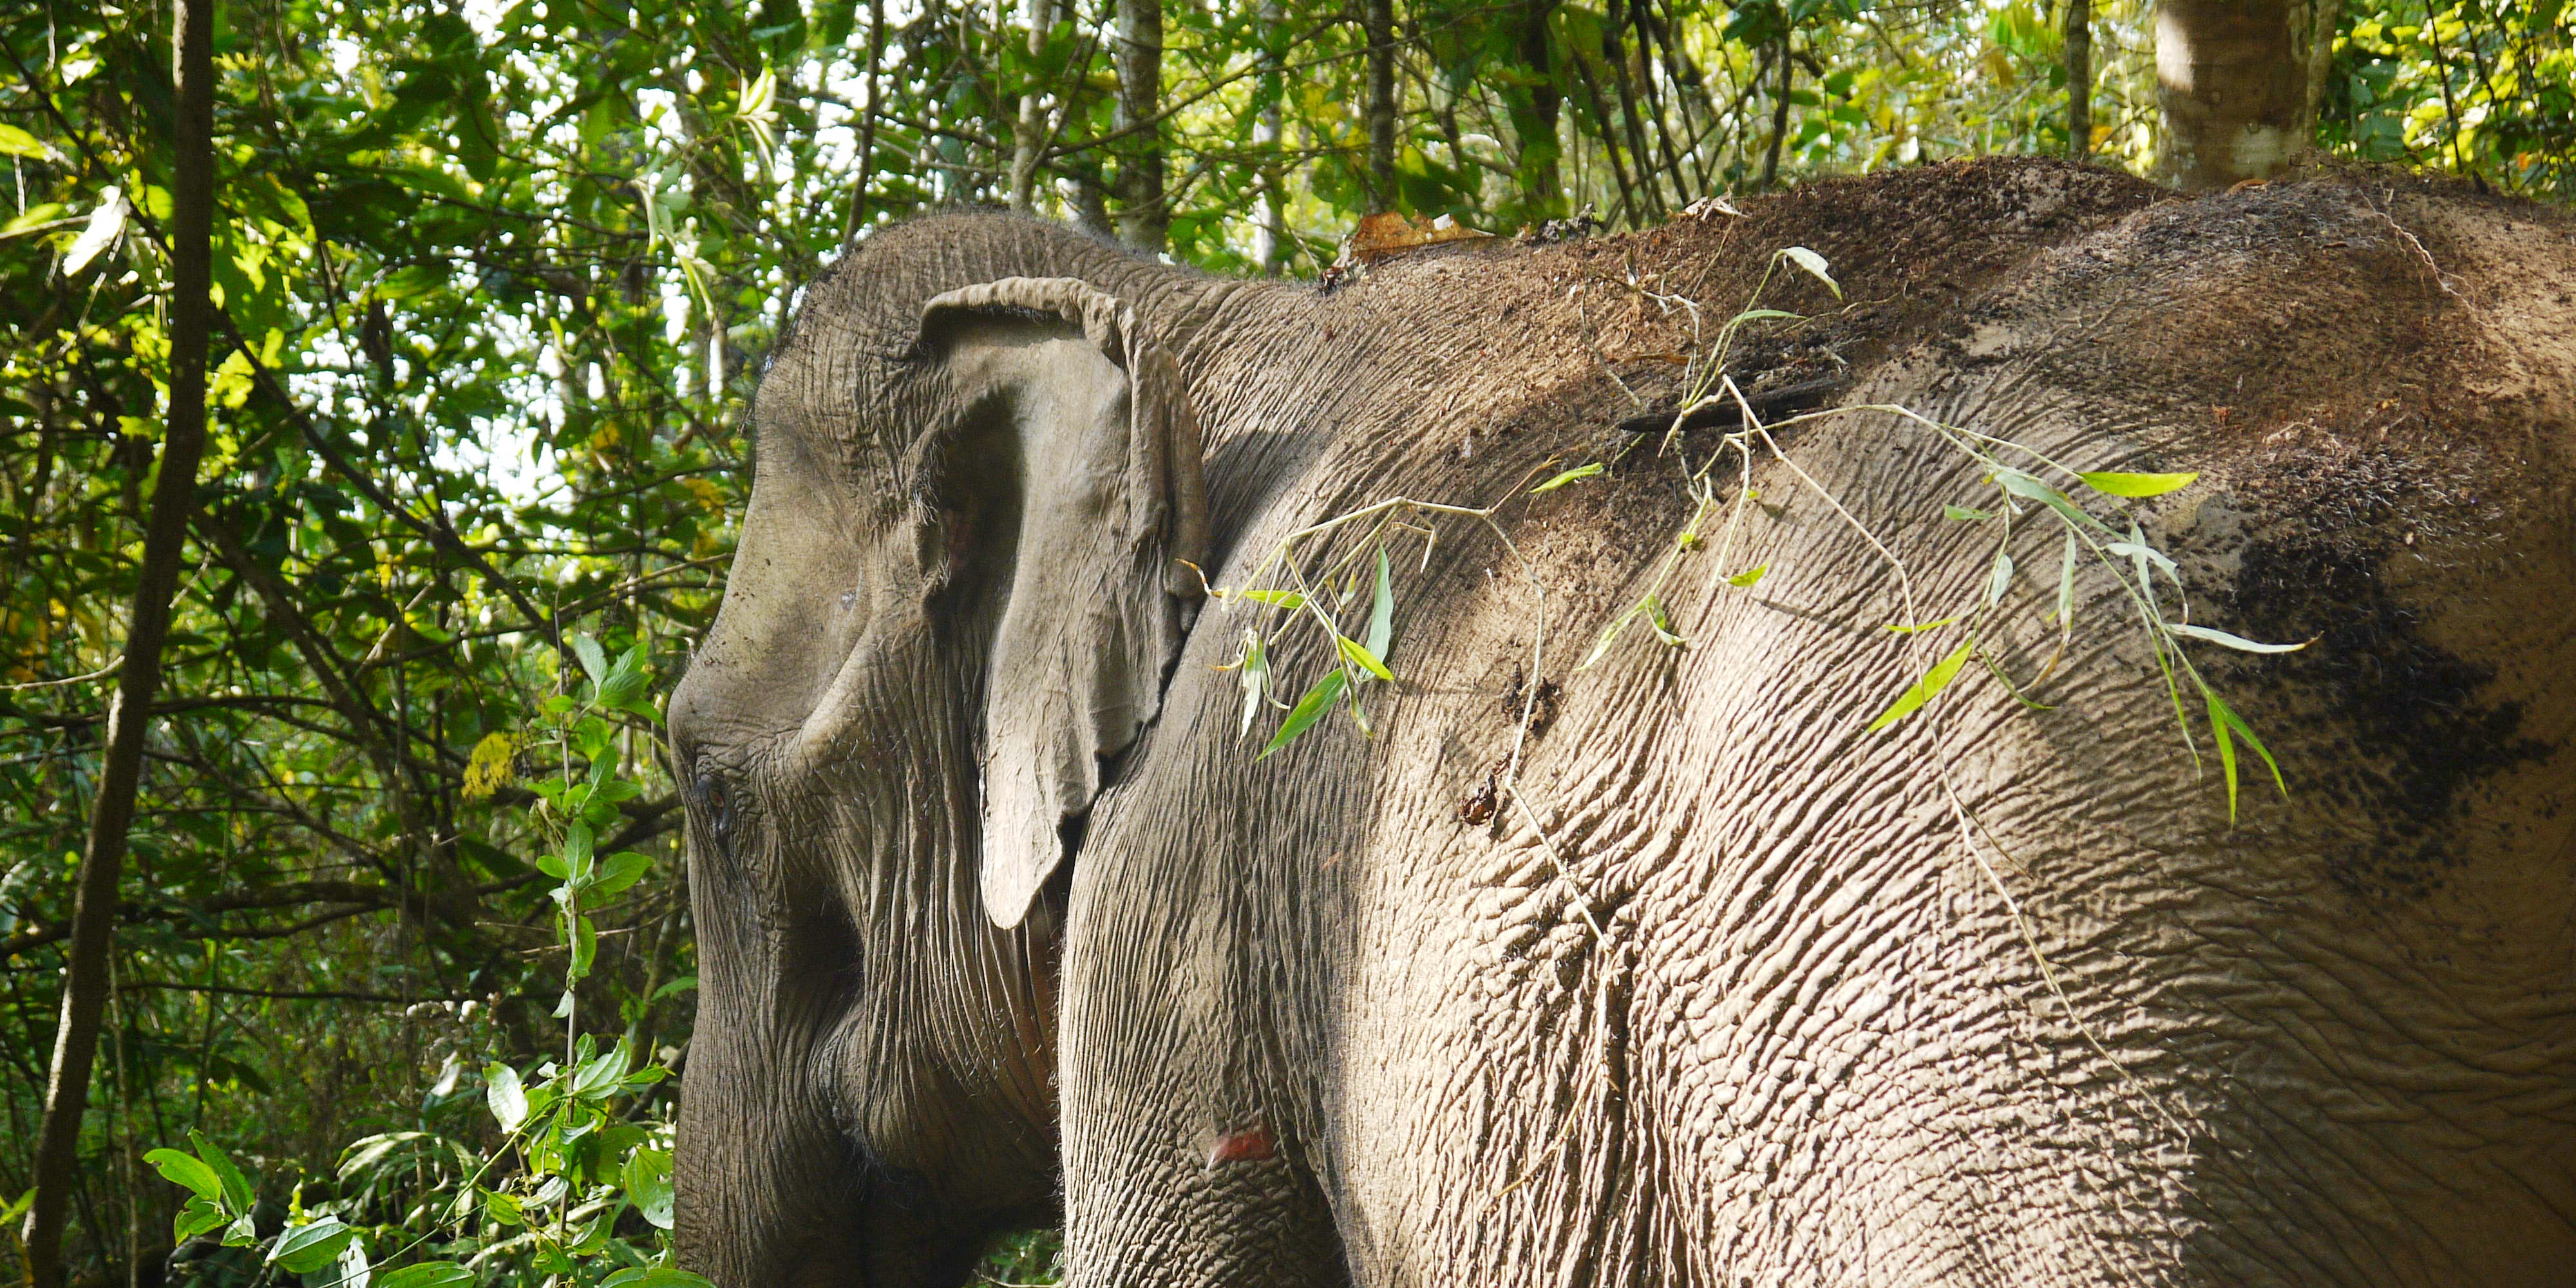 An elephant spends time in its forest habitat in the hills of Chiang Mai. This elephant is part of a volunteer with elephants program with GVI.